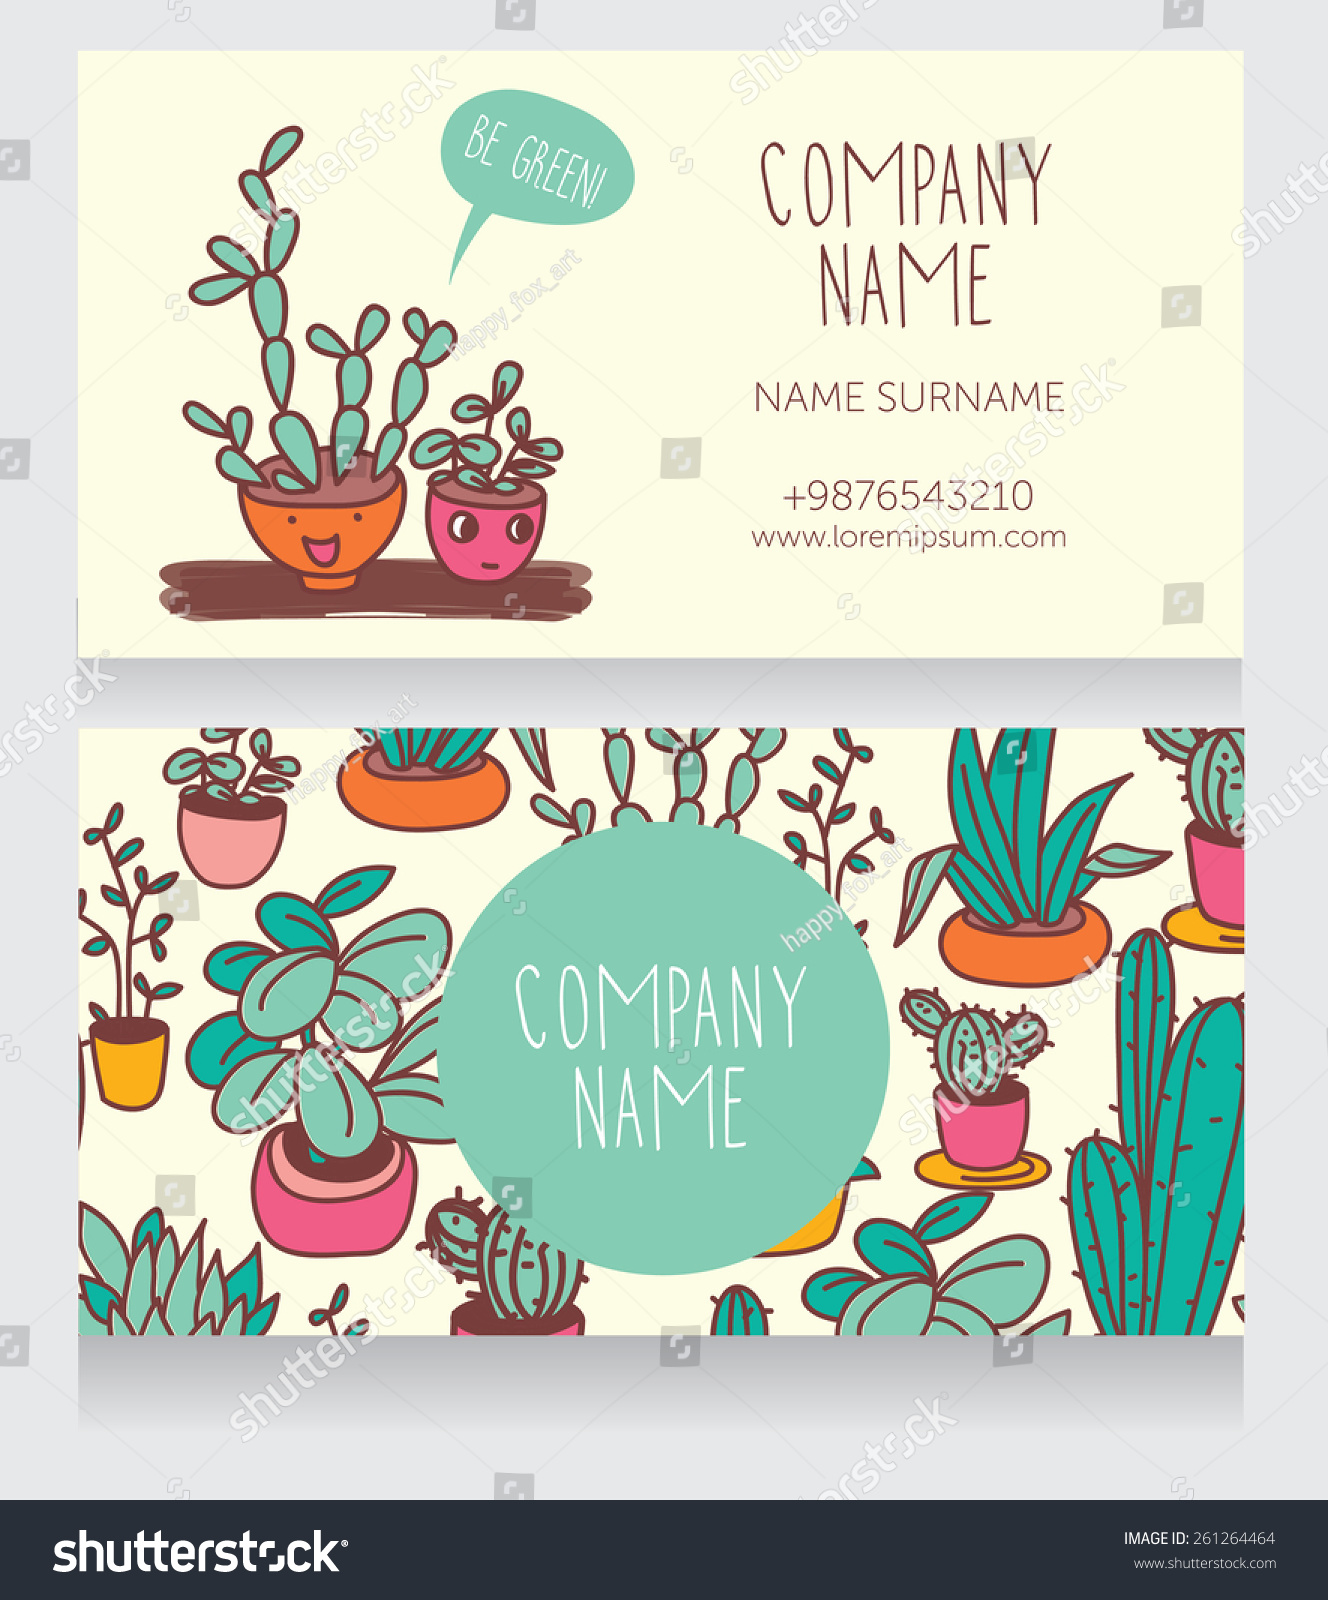 Business Card Design Smiling Potted Plants Stock Vector HD (Royalty ...